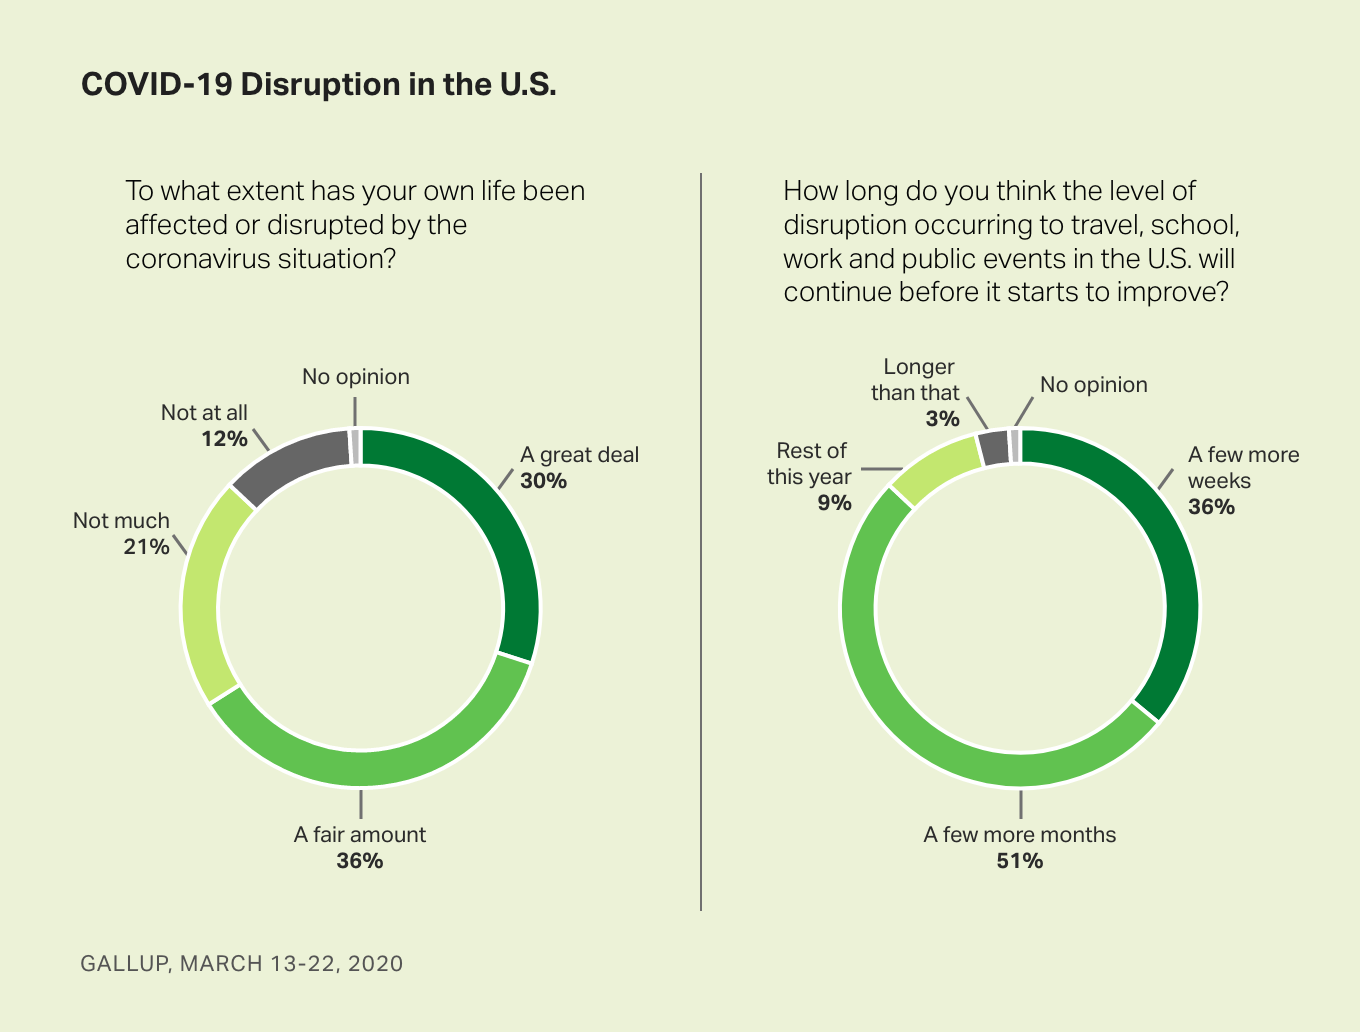 Donut charts. Americans' views of the degree of disruption in their lives from COVID-19 and how long they expect they'll last.